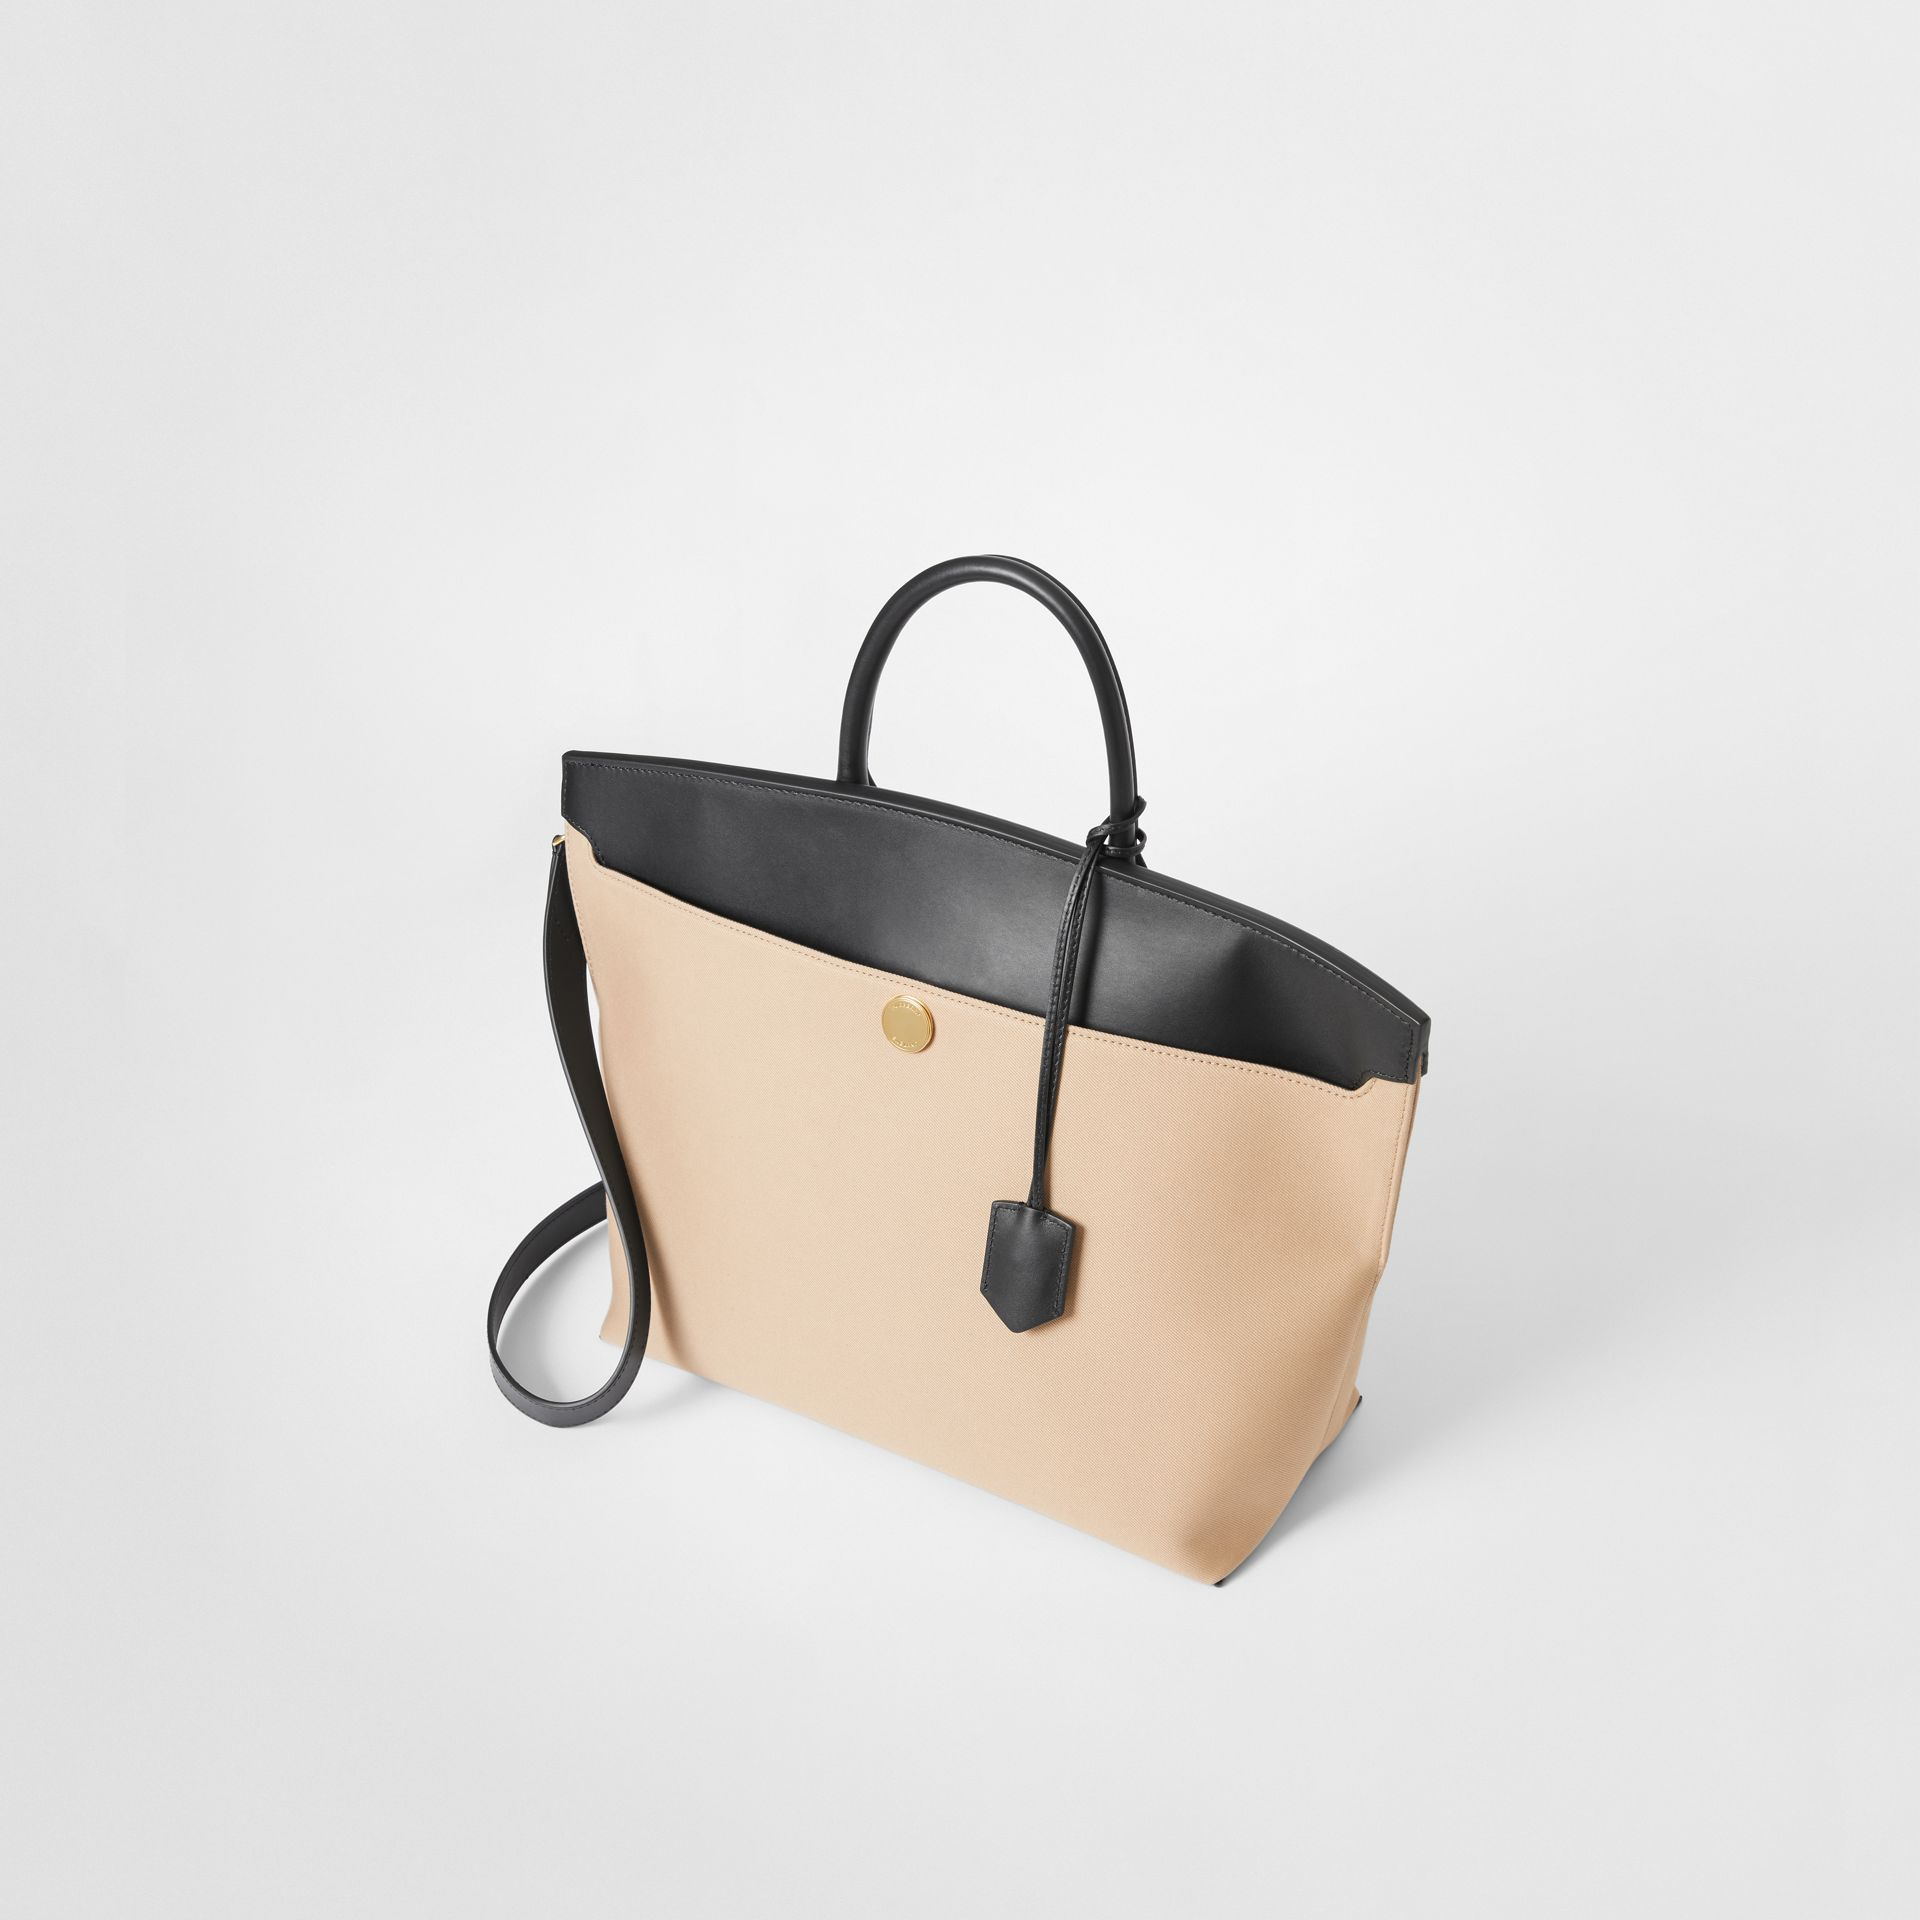 Cotton Canvas and Leather Society Top Handle Bag in Black/honey - Women | Burberry Canada - gallery image 3